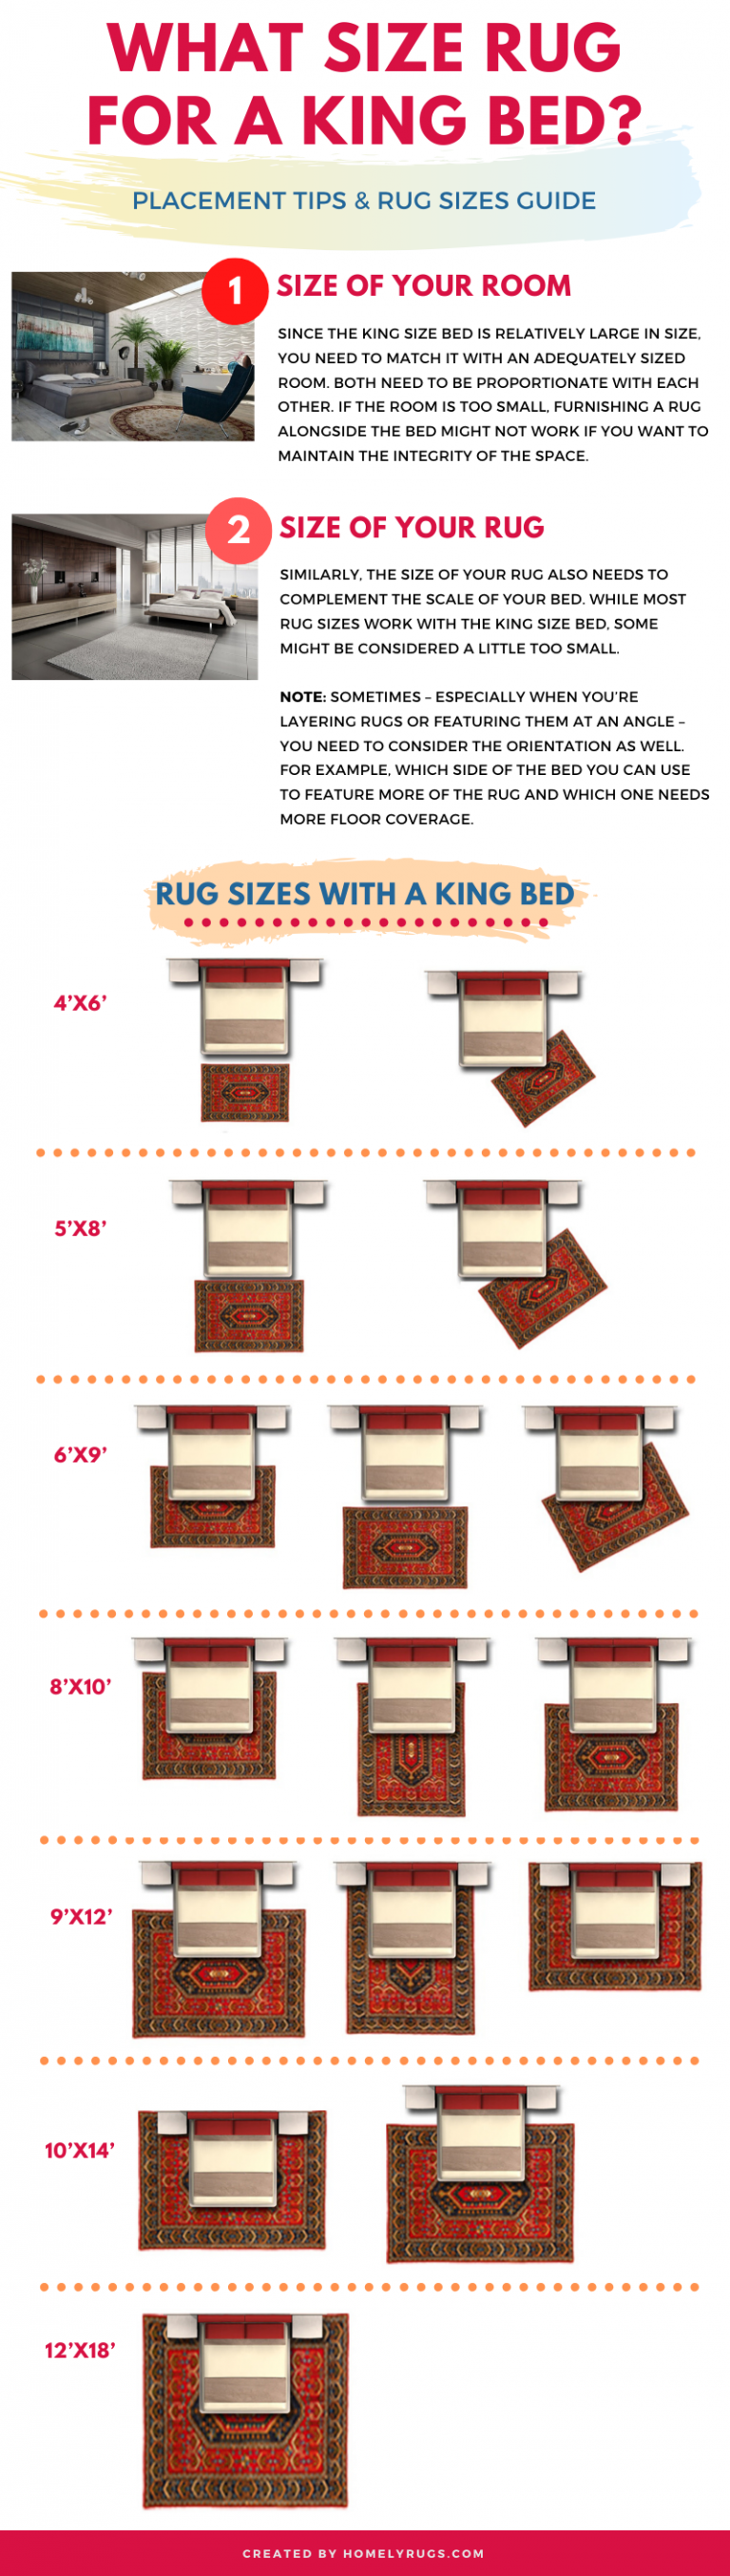 What Size Rug for a King Bed? Chart & Layout Designs